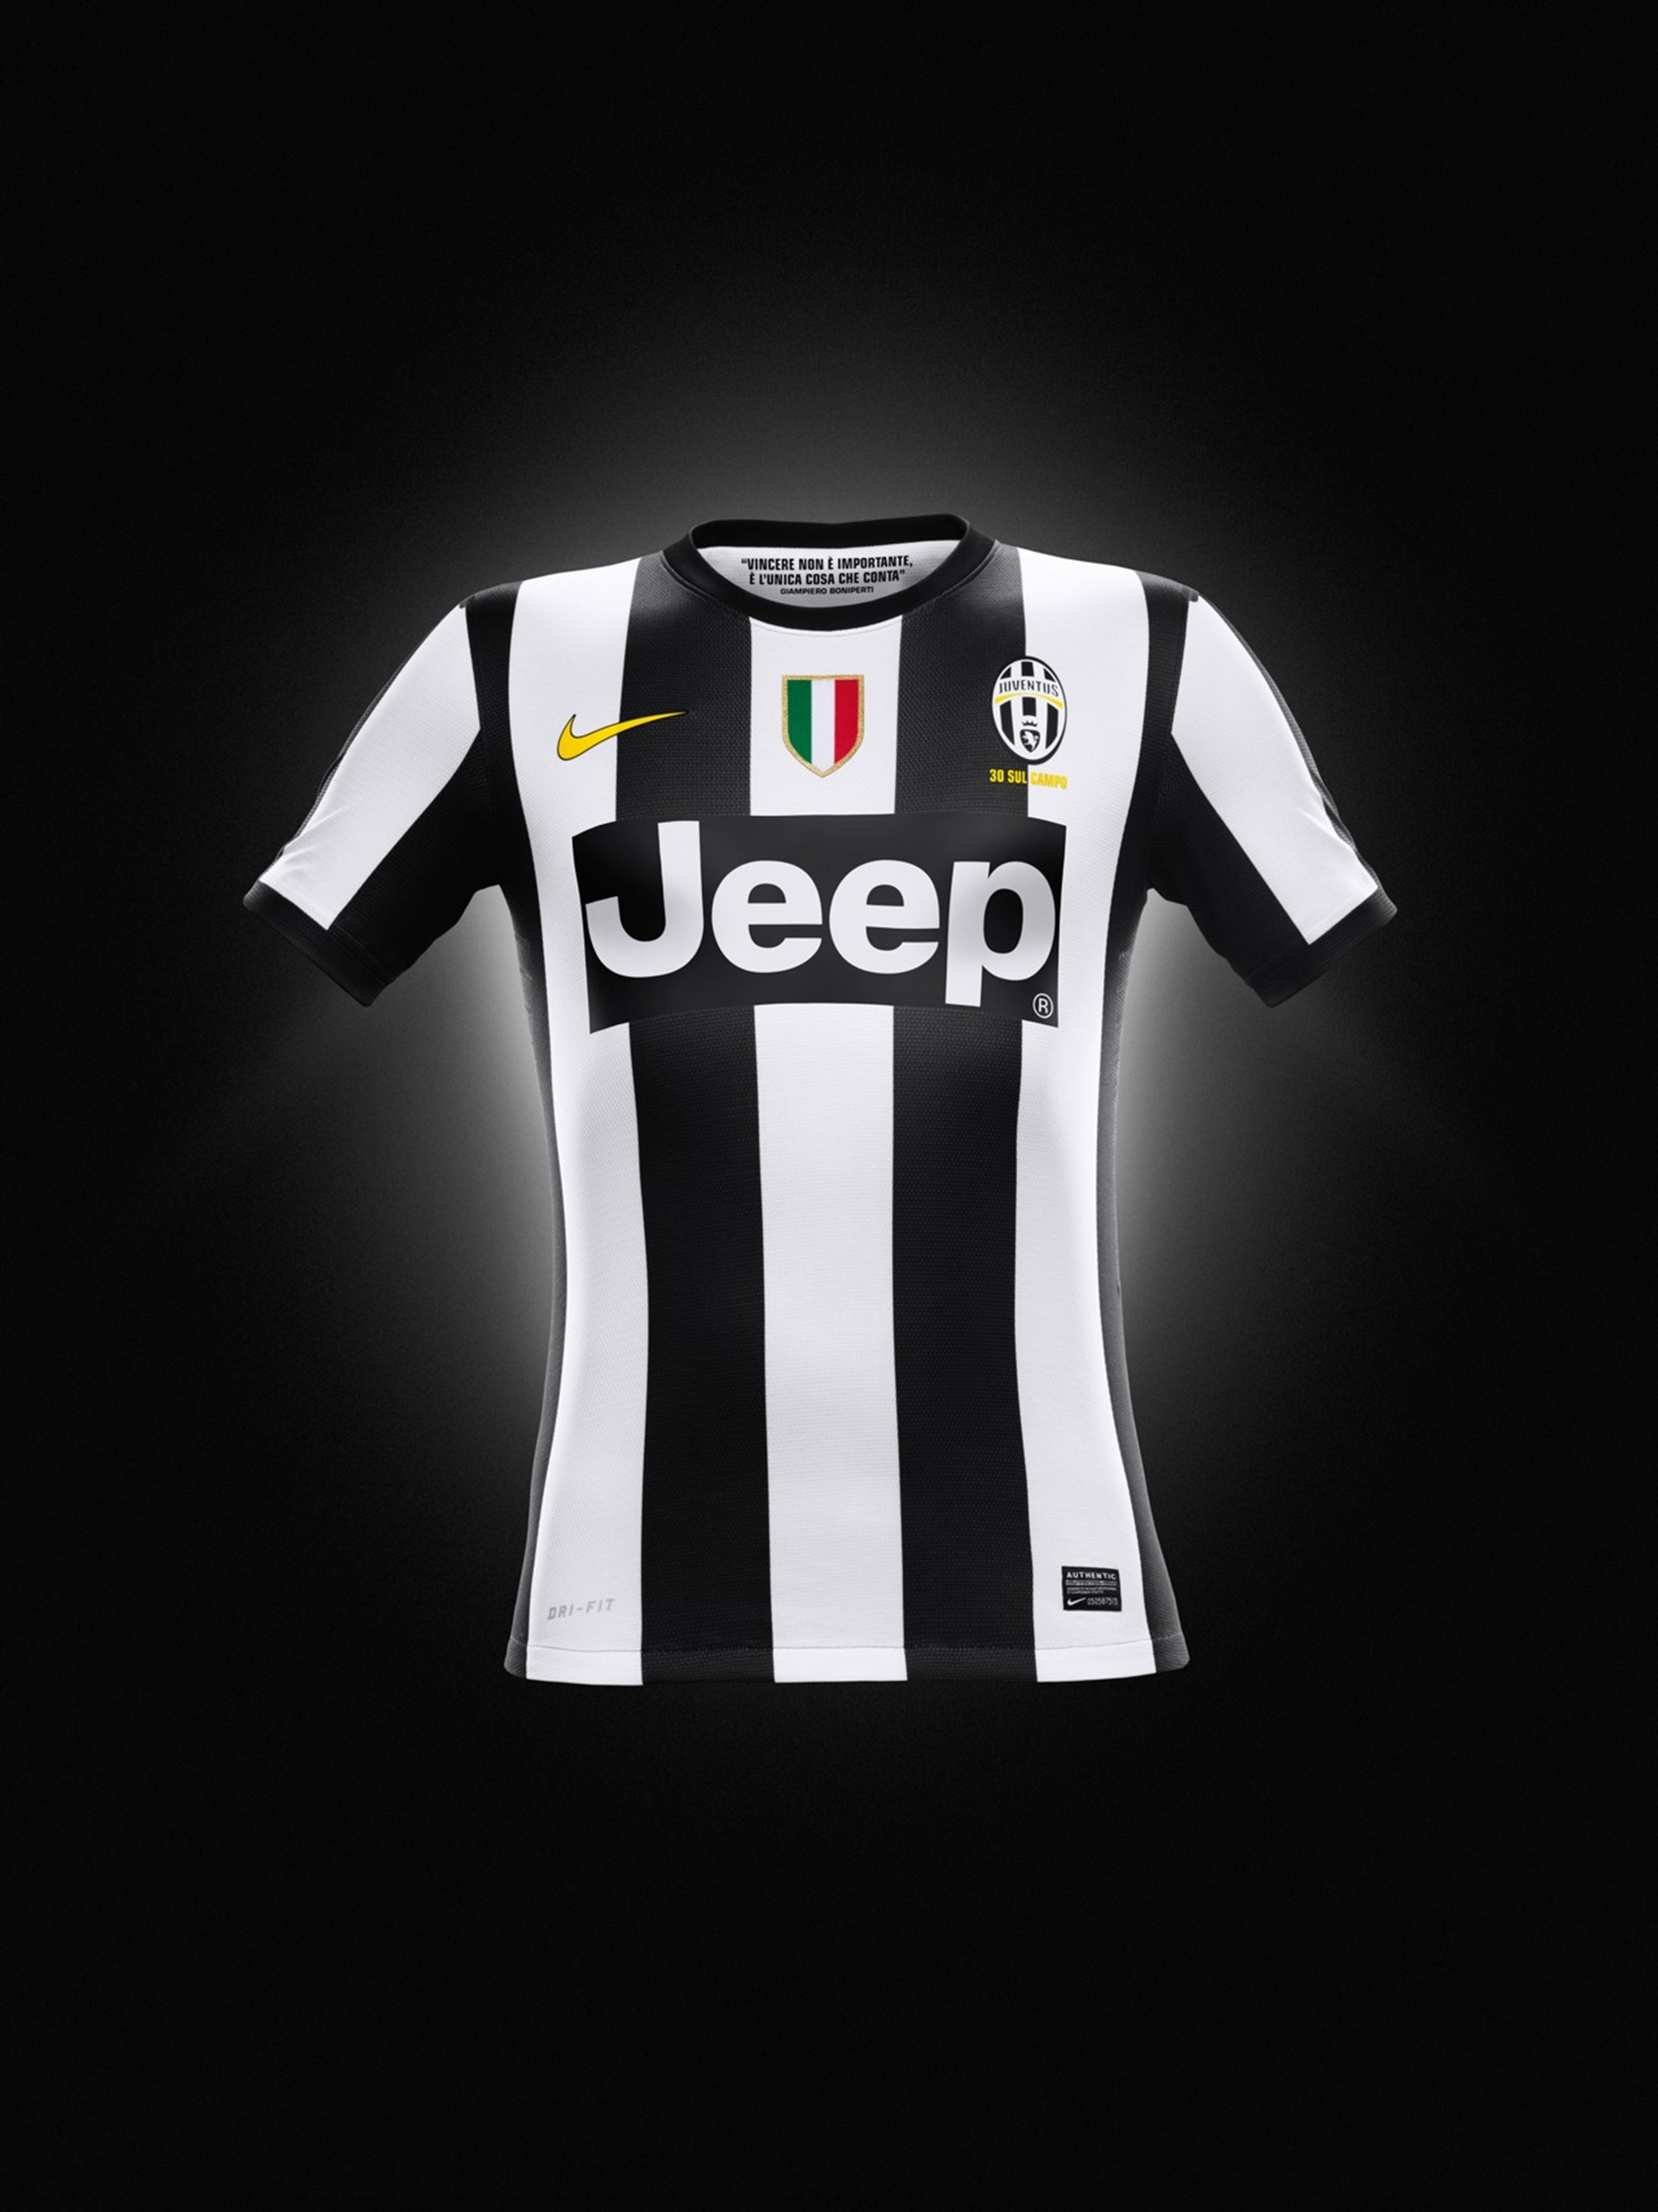 subaru jersey with The Jeep Brand Debuts On The Juventus Home Jersey on 2017 Team Giant Black Blue Cycling Jersey And Bib Shorts Set together with 2016 Sportful Selva Black Camouflage Cycling Jersey And Bib Shorts Set additionally 5 furthermore 205151 as well 2015 Team Iam Cycling Jersey And Bib Shorts.